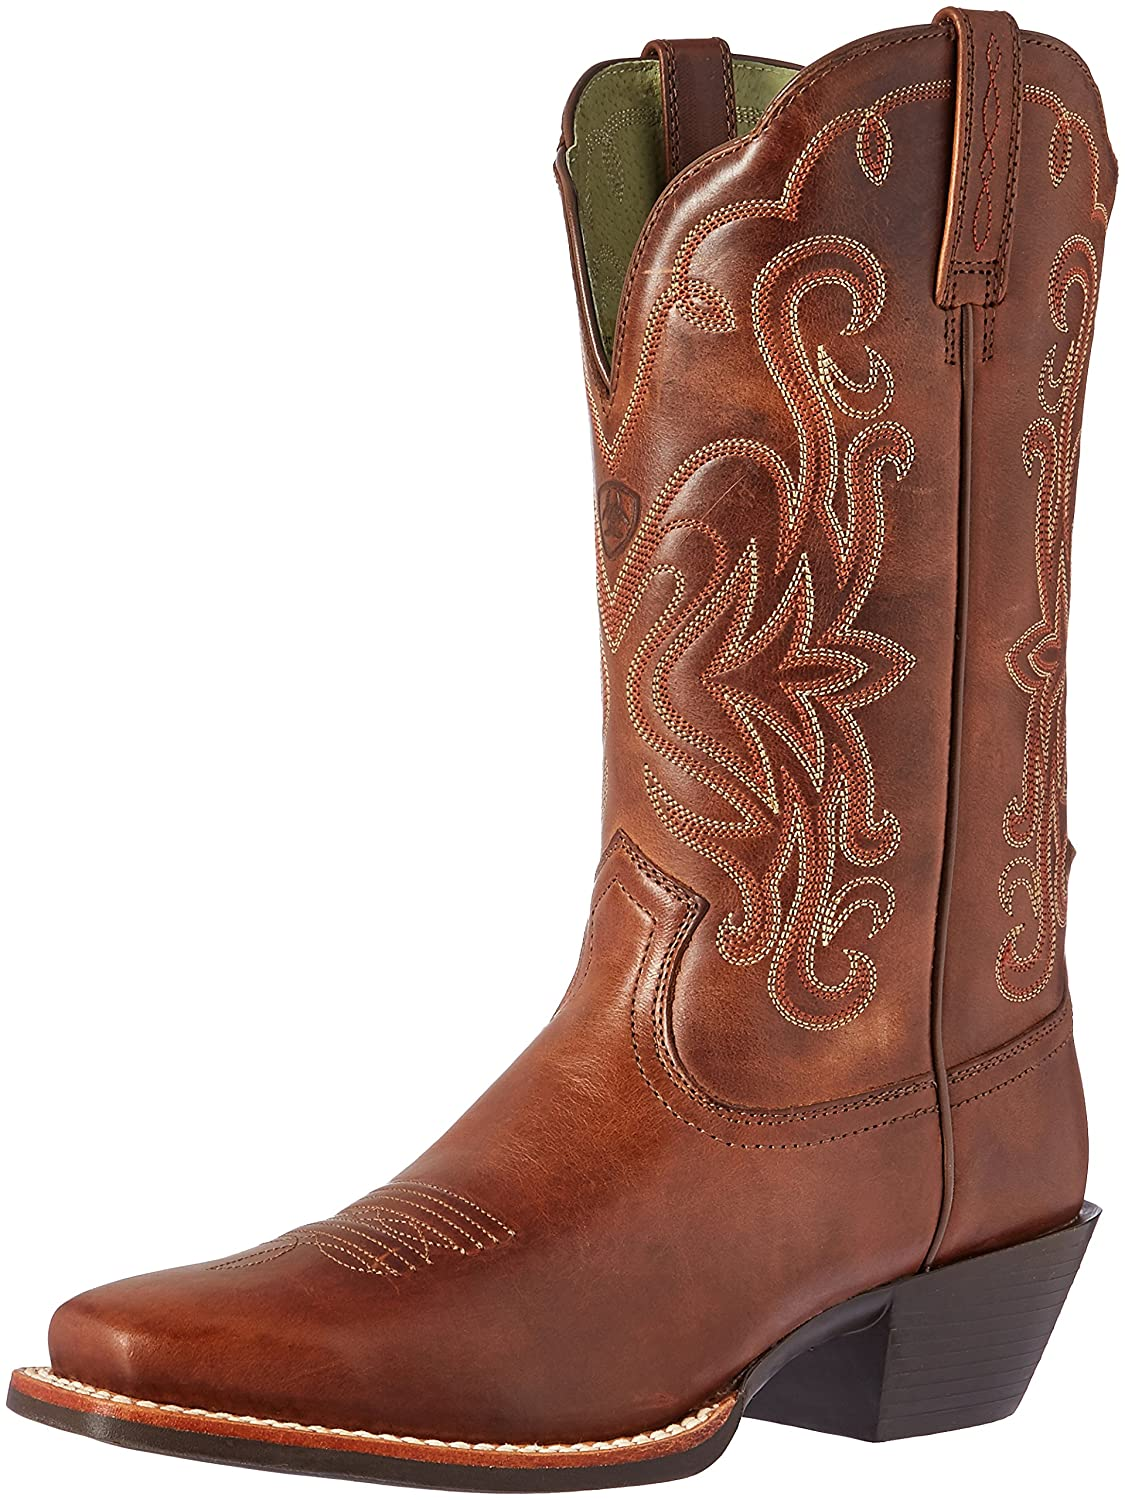 Ariat Women's Legend Western Cowboy Boot B004BNNJF0 7.5 C US|Russet Rebel